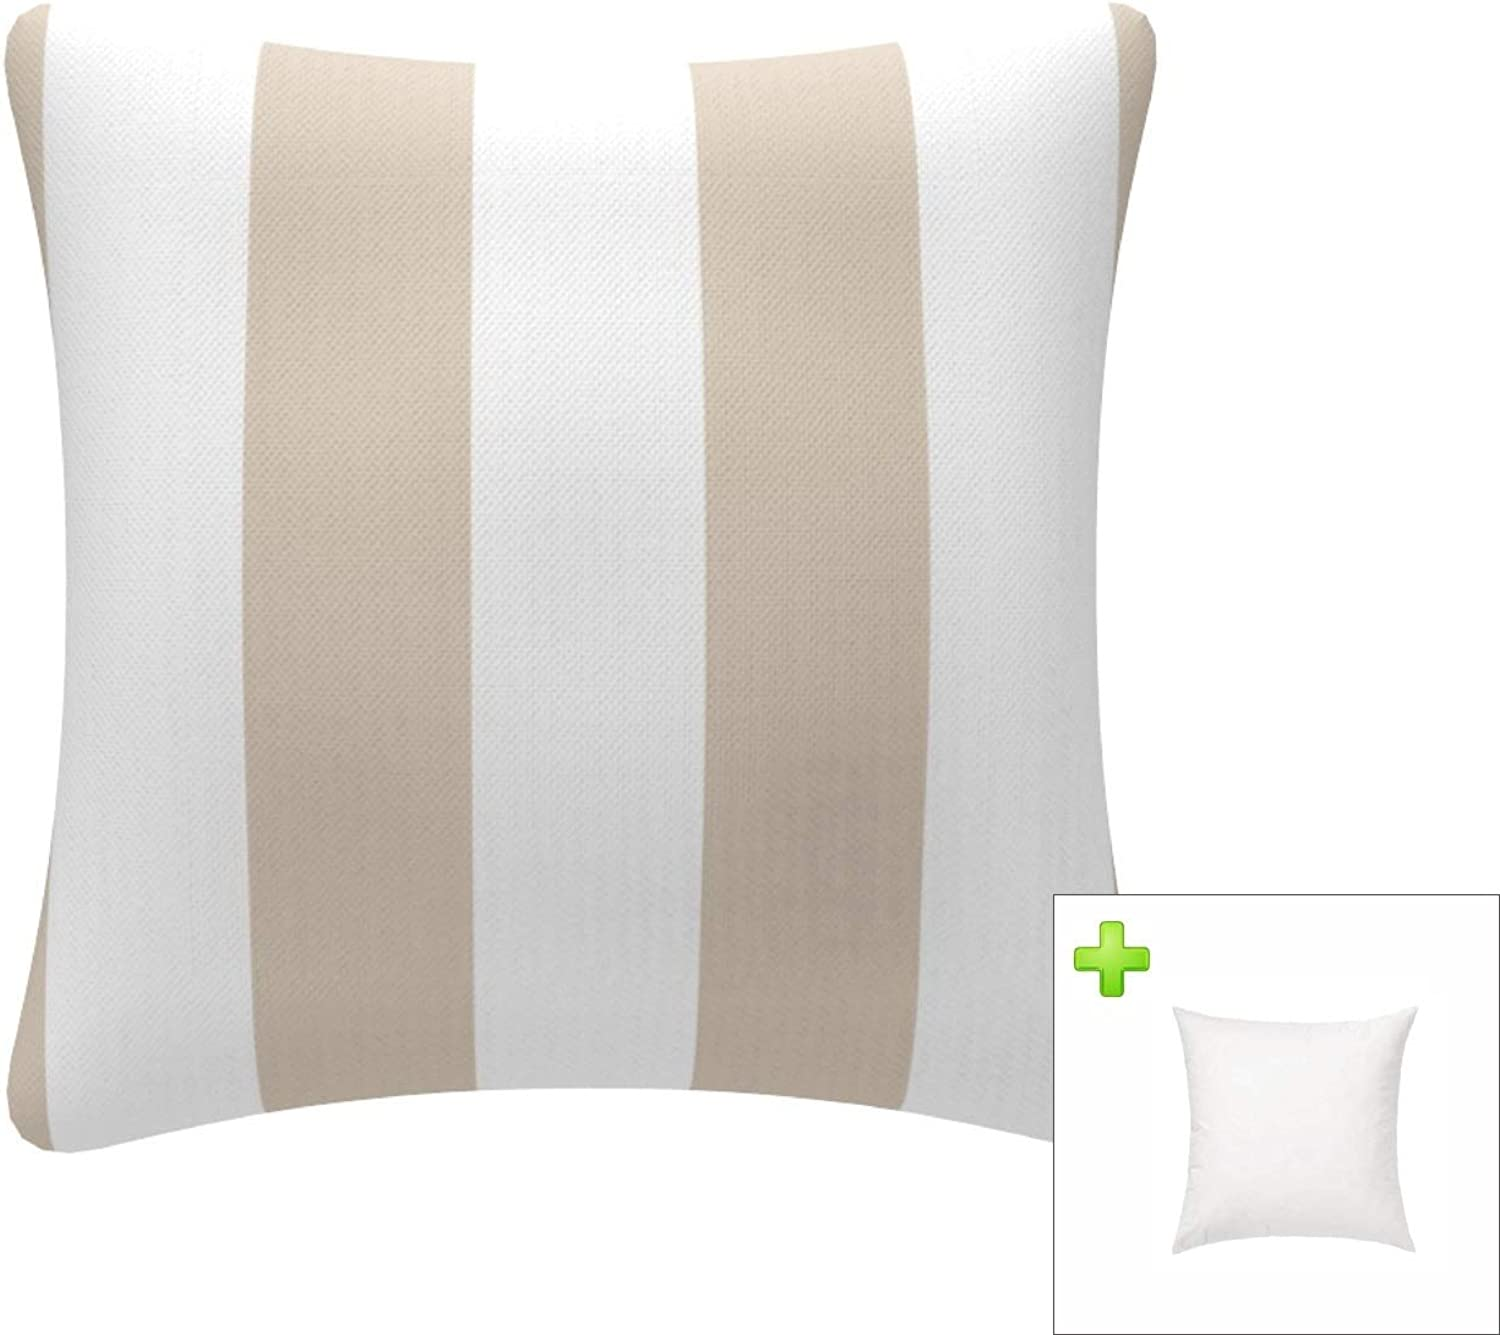 FBTS Prime Throw Pillow with Insert Indoor Outdoor 18 by 18 inches Decorative Square Cushion Cover Pillow Sham (Beige & White, Stripe) for Couch Bed Sofa Patio